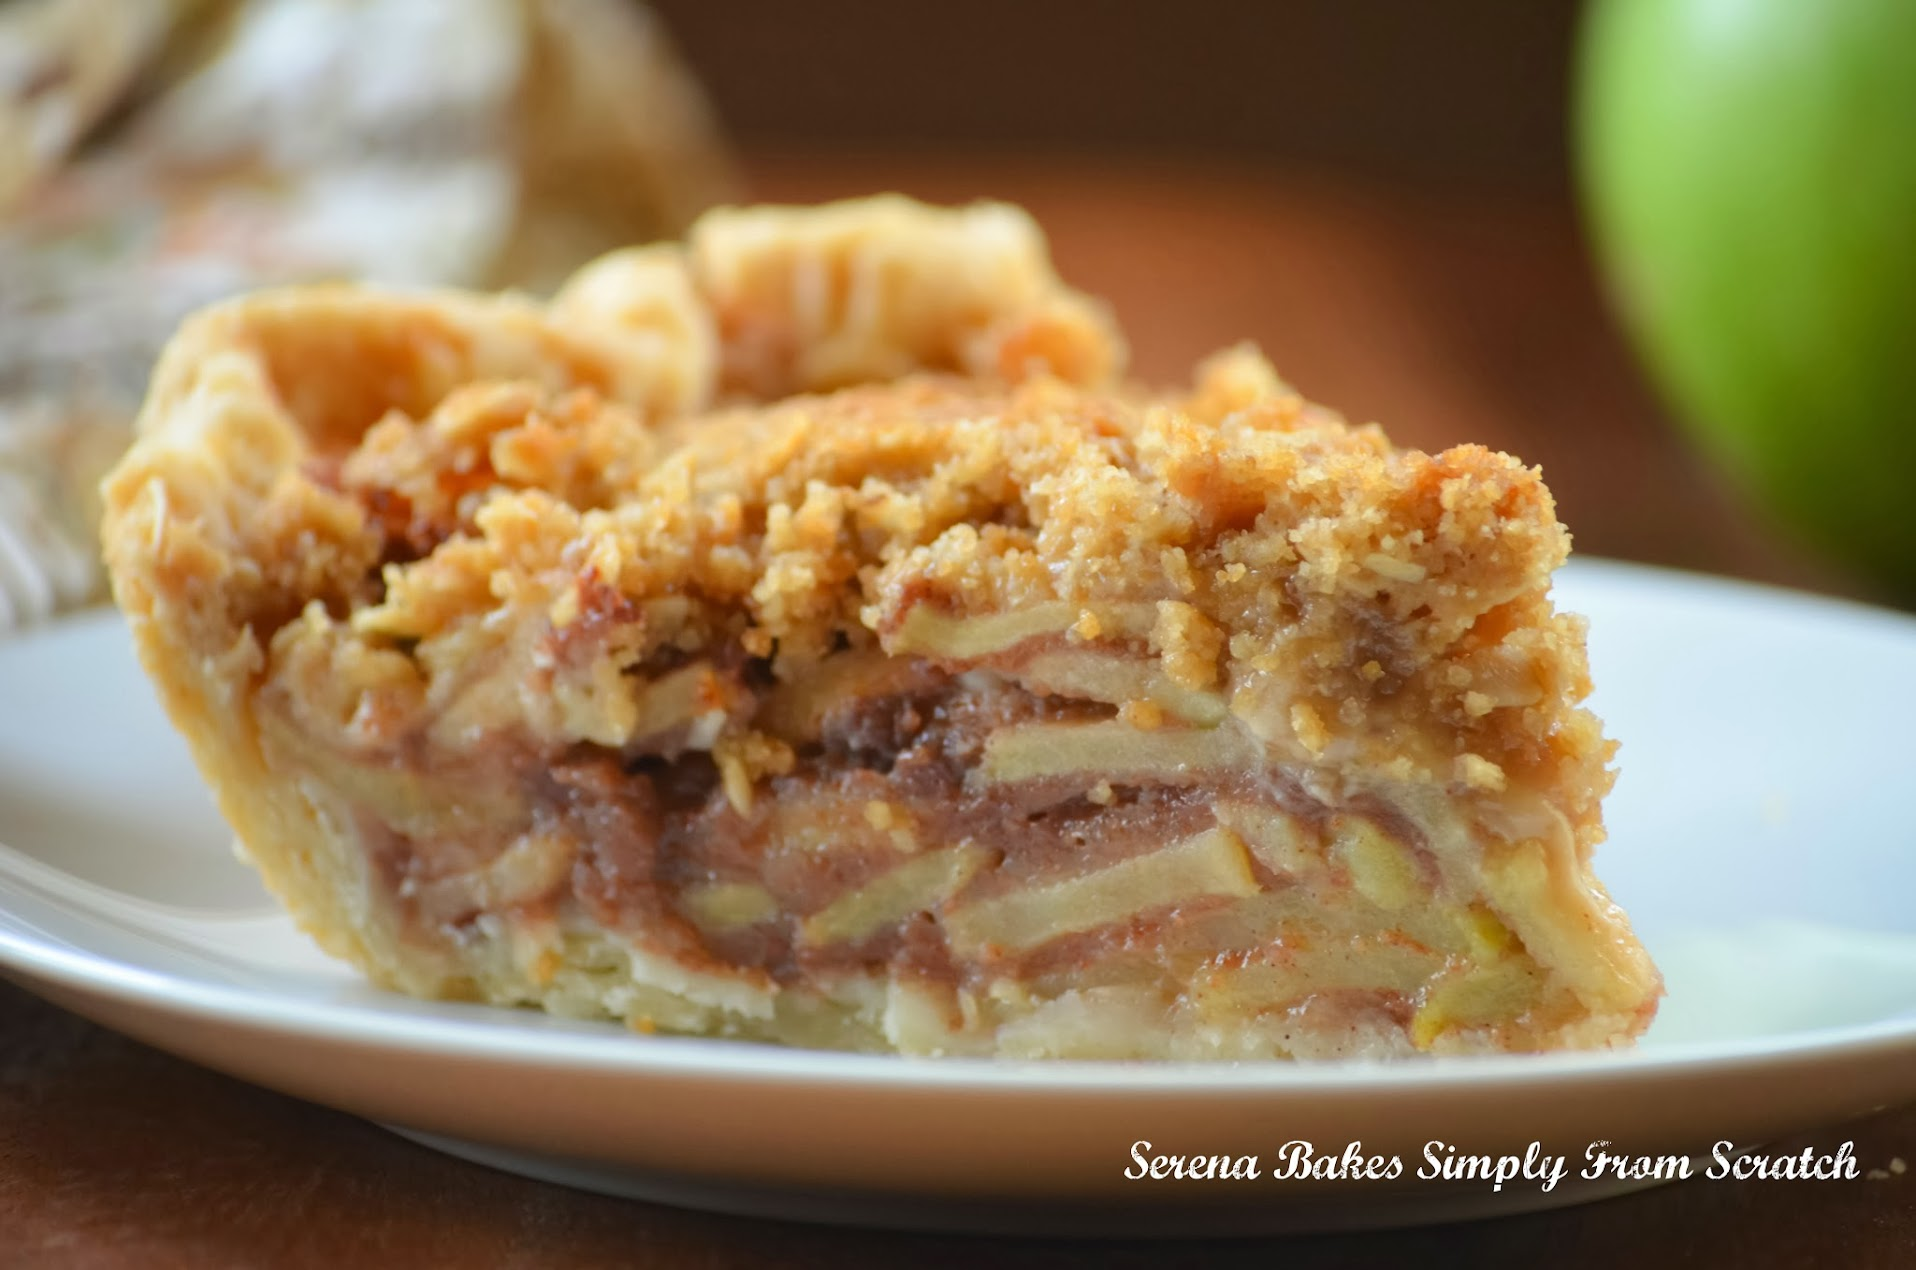 Caramely Apple Pie With Crunch Topping brings all the favorite flavors of fall into one perfect slice of pie. serenabakessimplyfromscratch.com